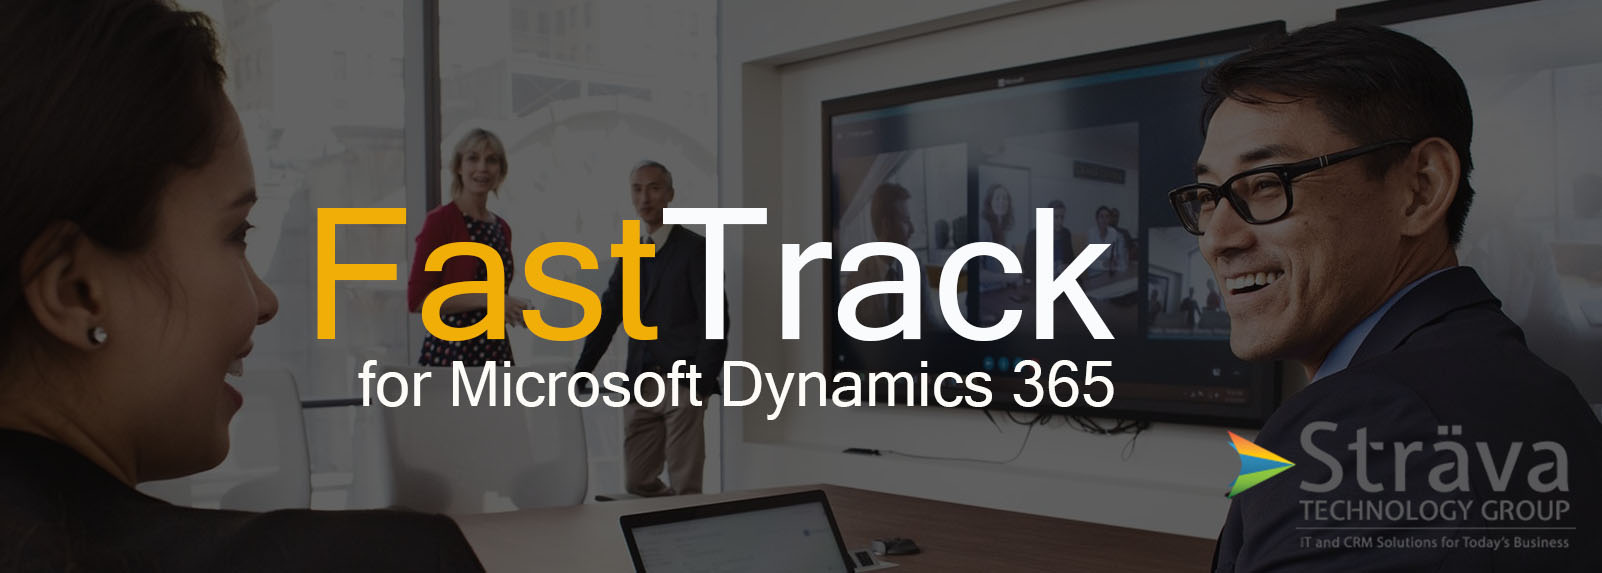 FastTrack for Microsoft Dynamics 365